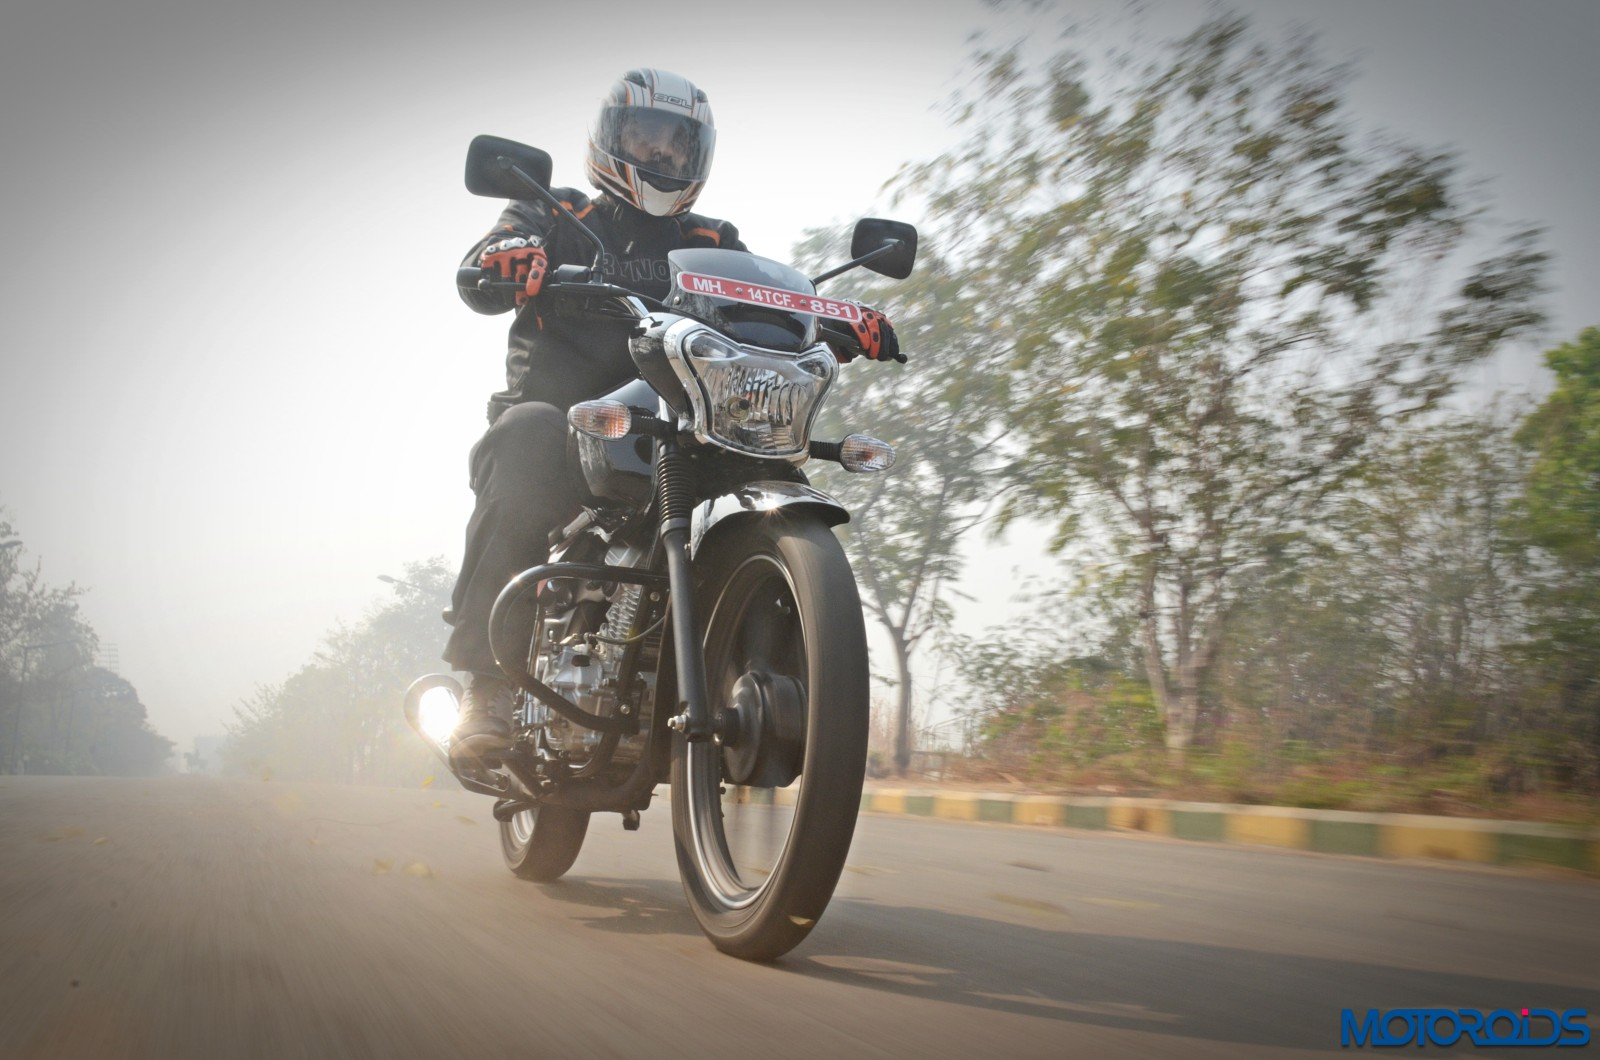 Bajaj-V12-Review-Action-Shots-4